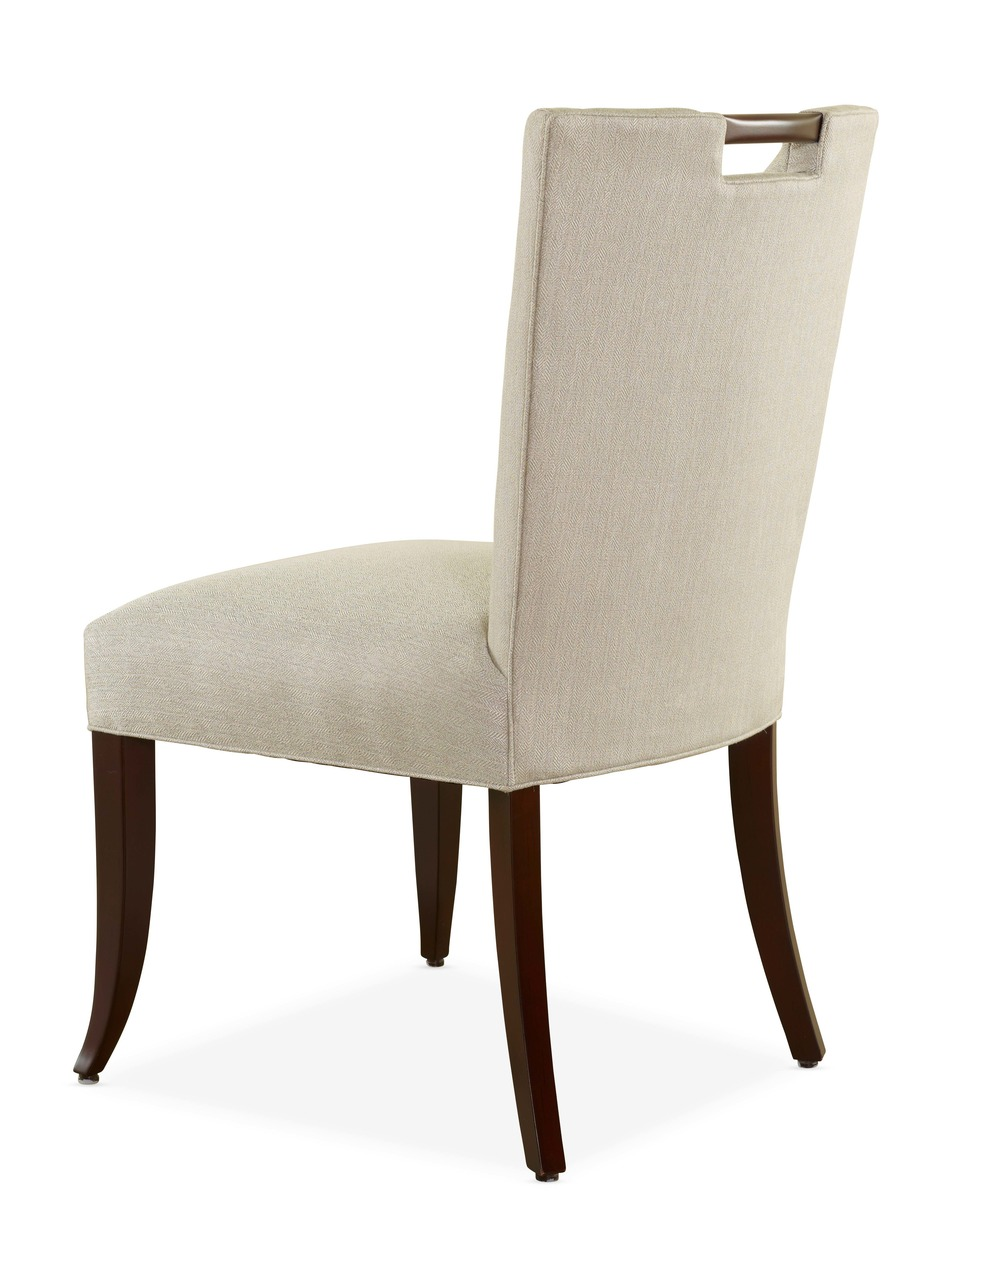 Designmaster Furniture - Darby Side Chair